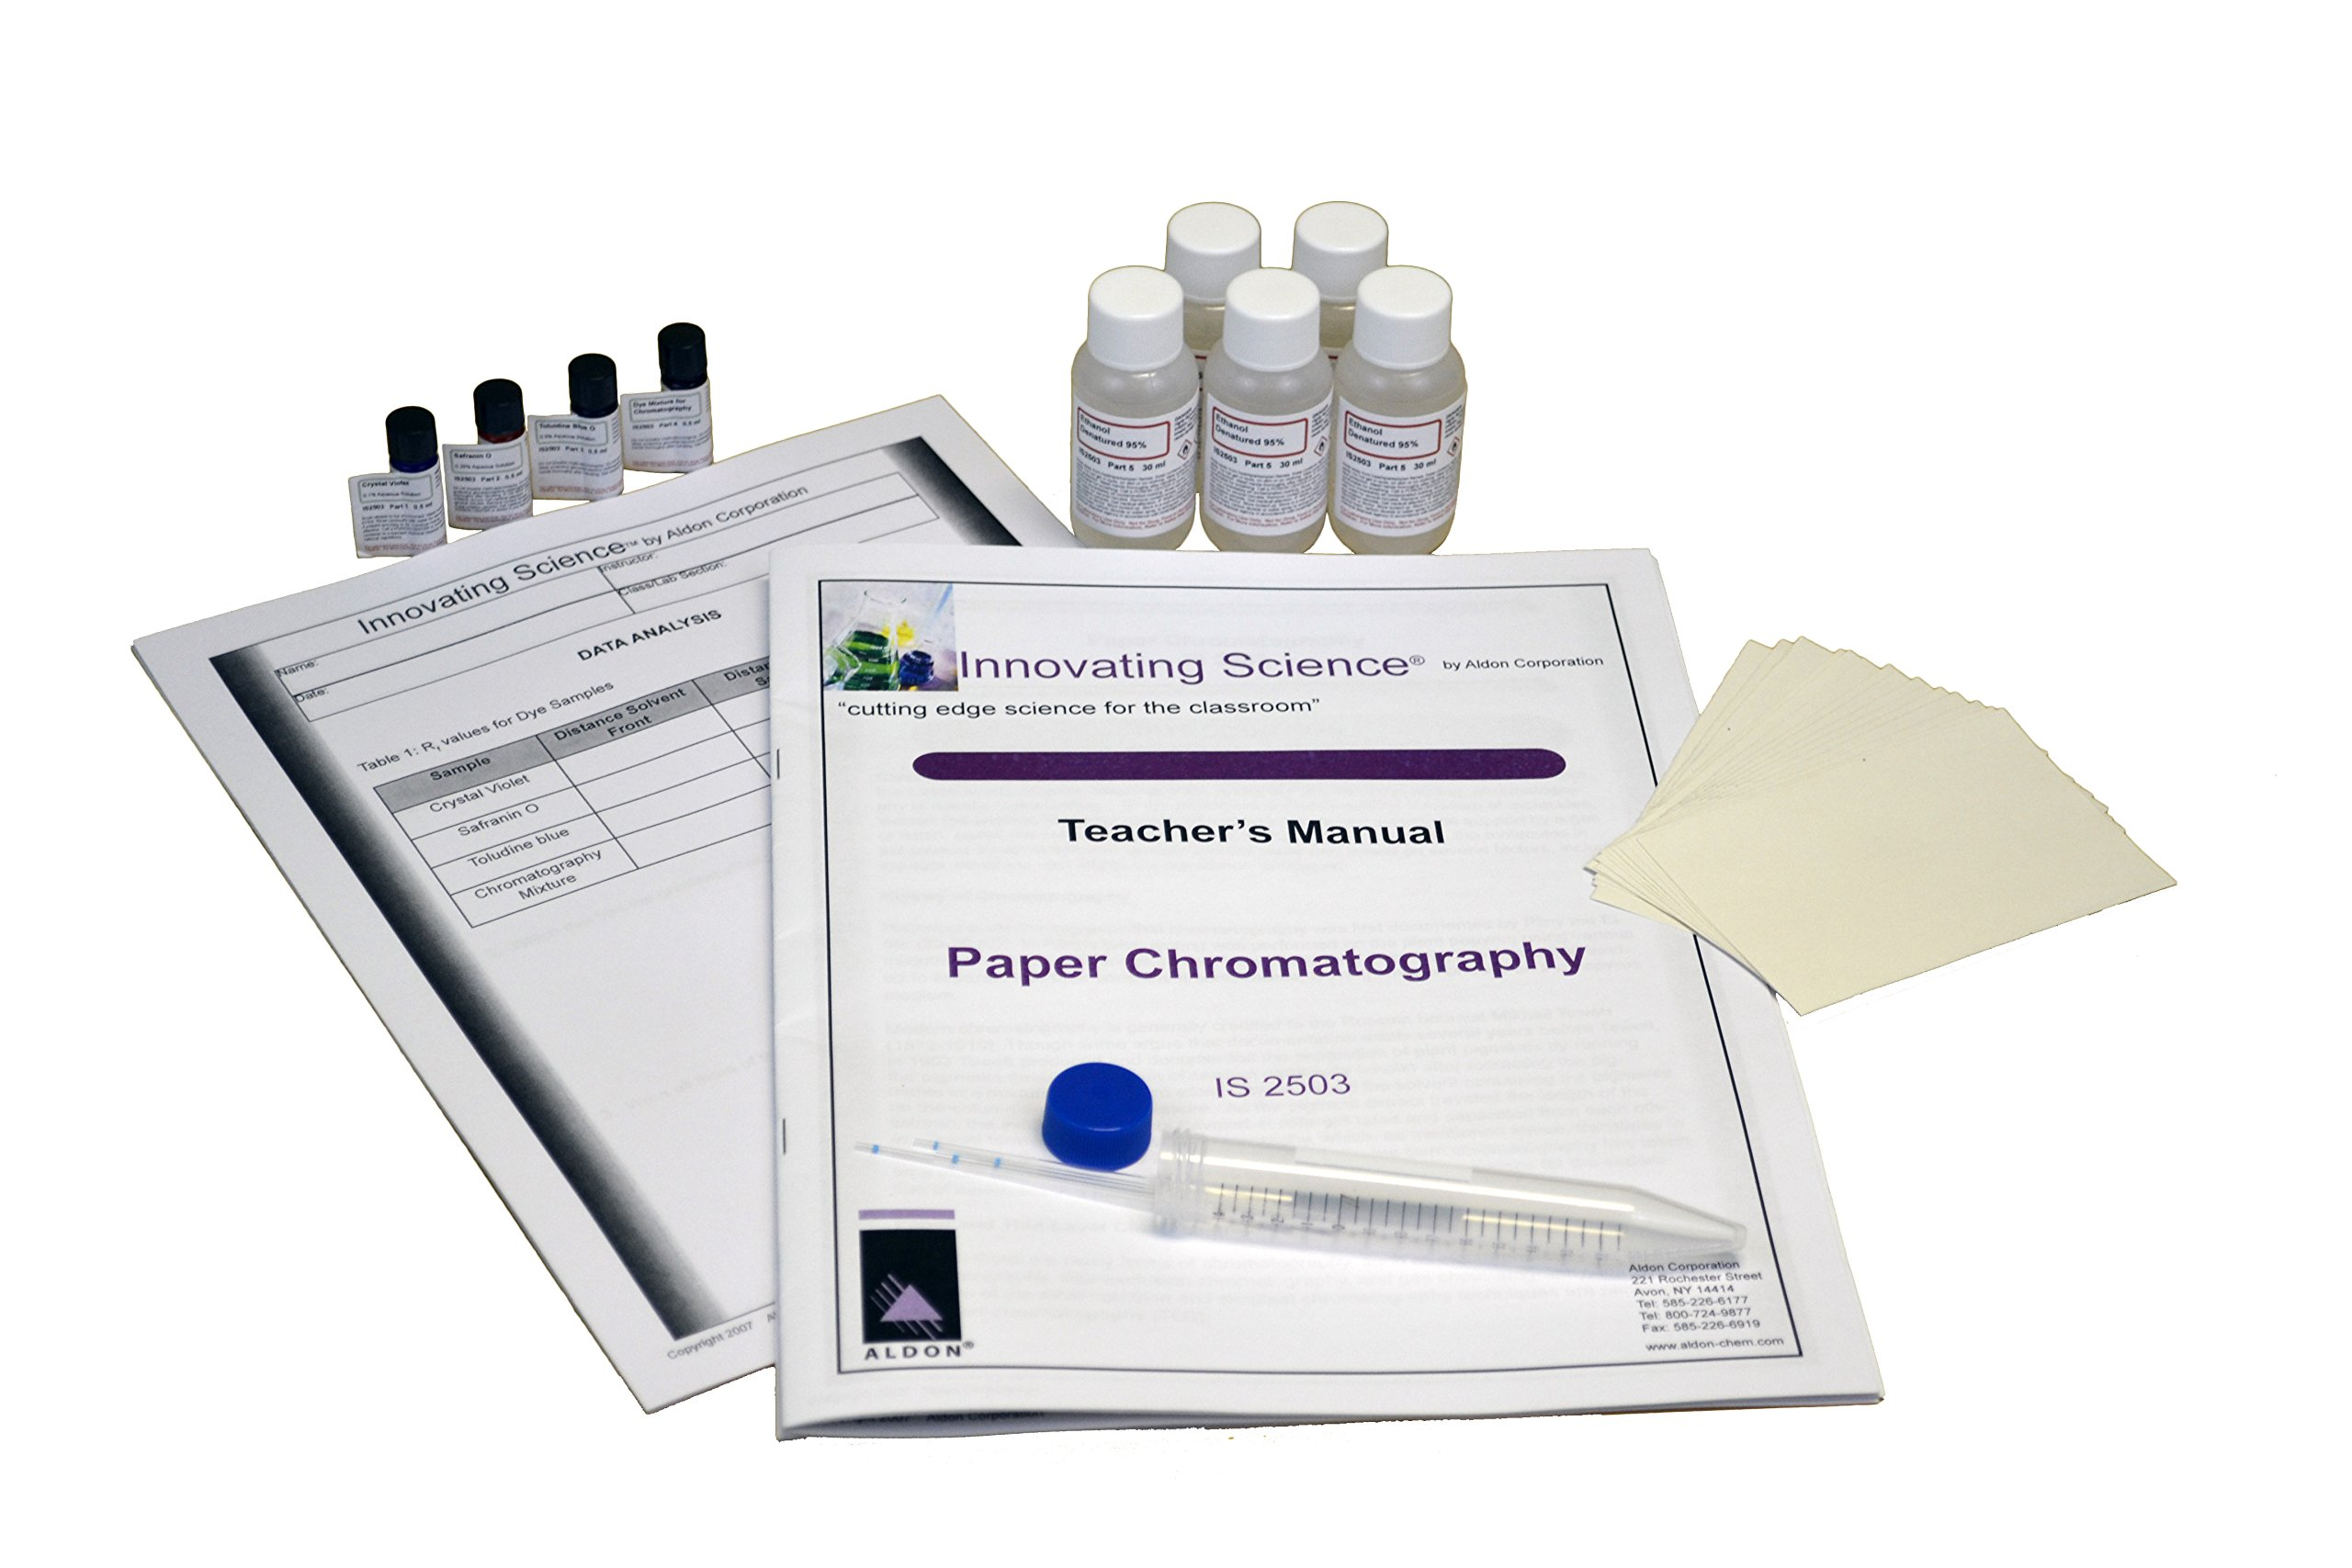 Innovating Science Paper Chromatography Kit to Separate Chemical Substances by Innovating Science